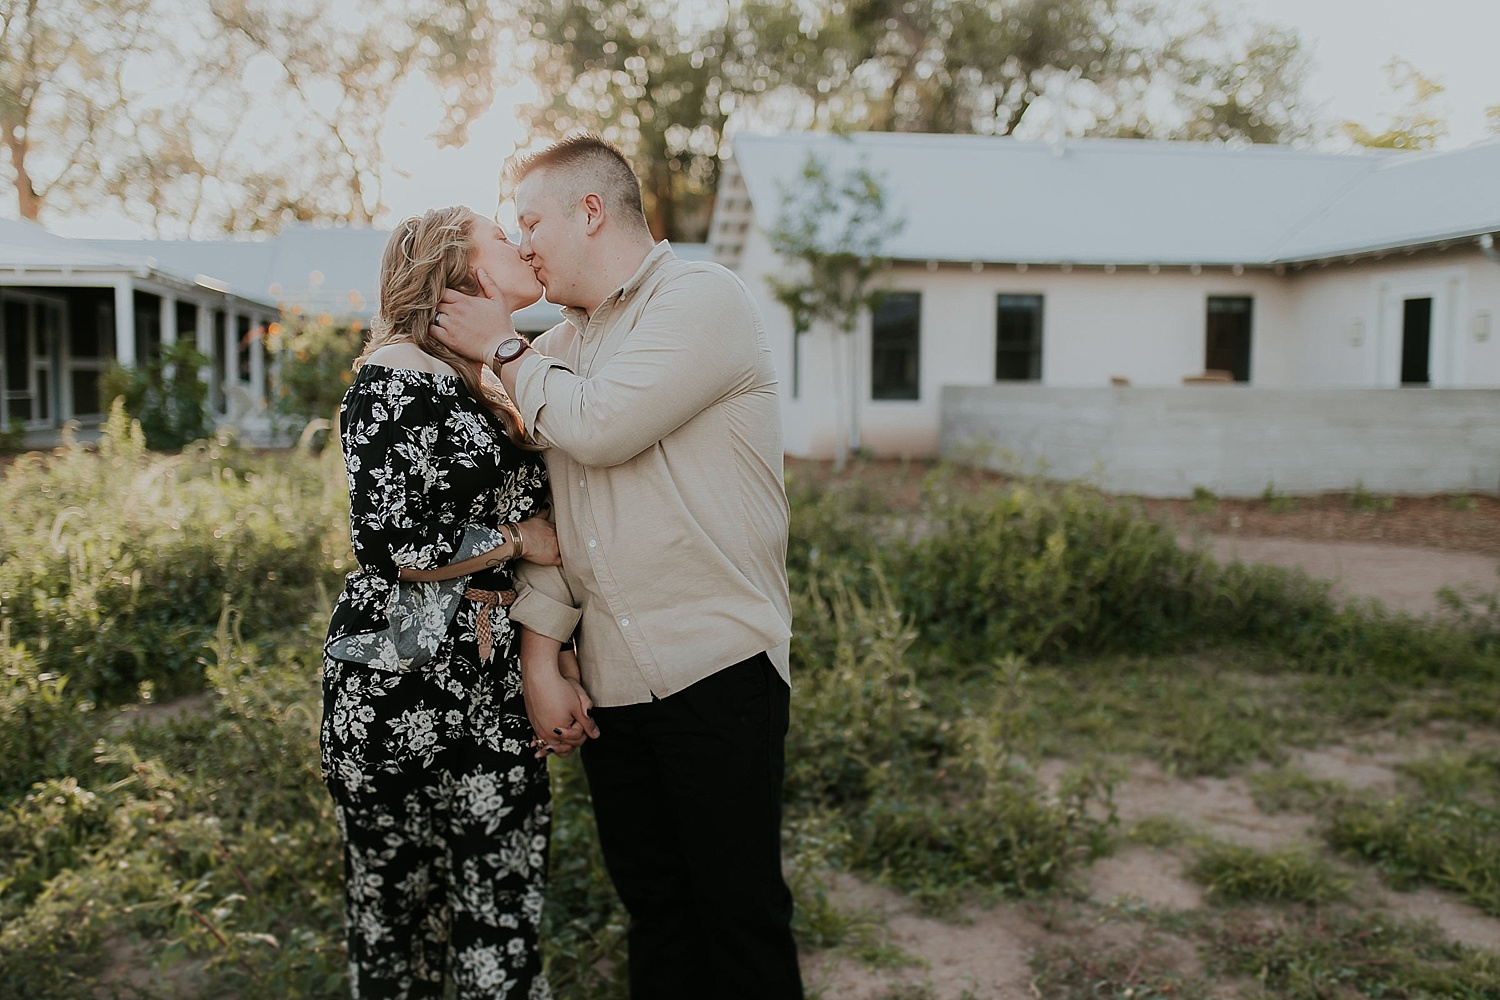 Alicia+lucia+photography+-+albuquerque+wedding+photographer+-+albuquerque+wedding+photography+-+new+mexico+wedding+photographer+-+new+mexico+engagement+-+los+poblanos+engagement_0003.jpg